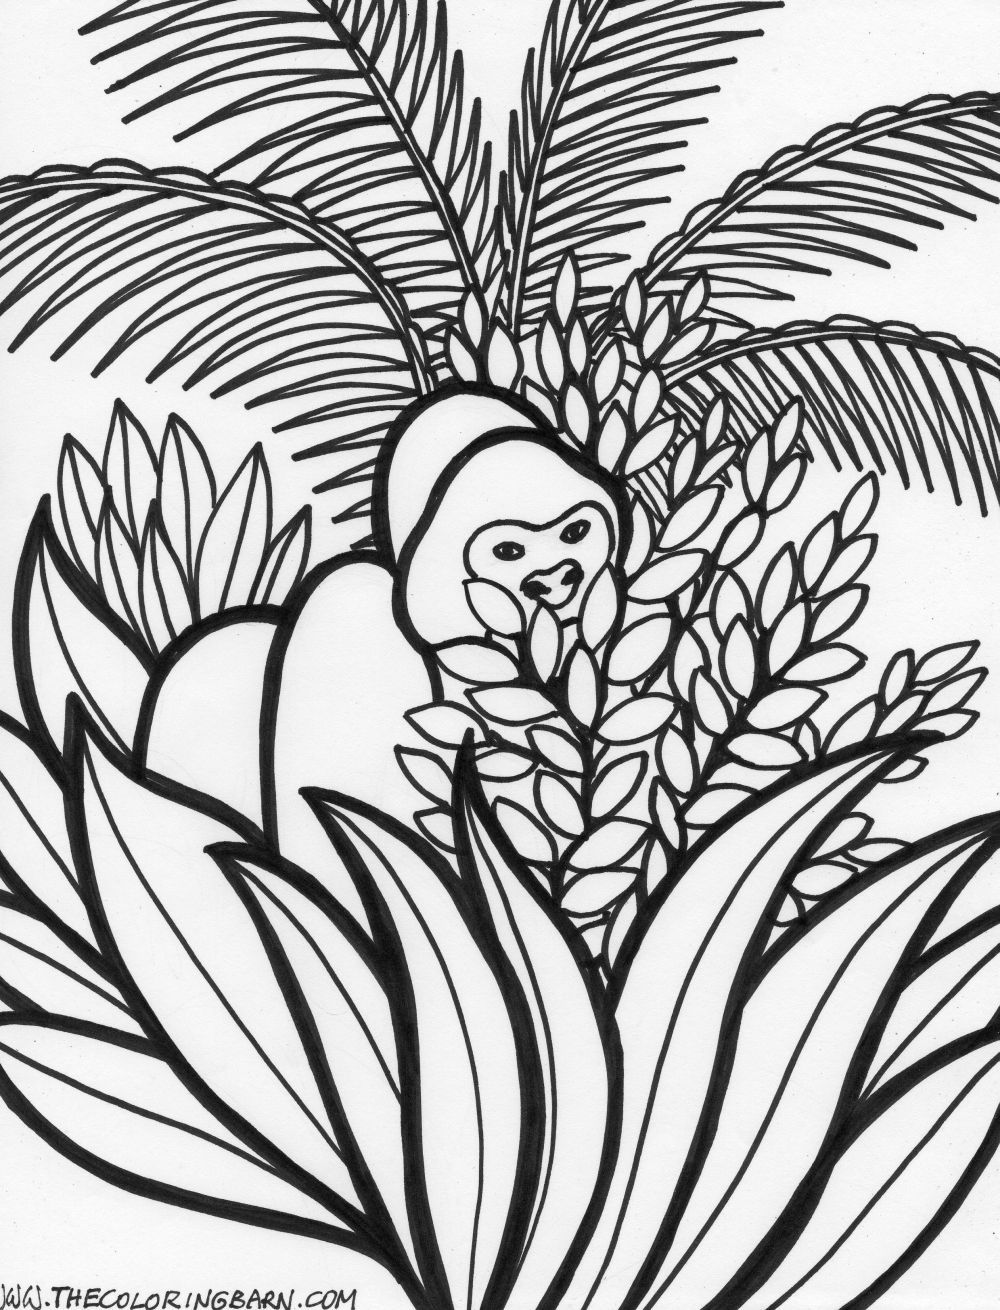 Rainforest Animal Coloring Pages Animal Coloring Pages Animal Coloring Books Rainforest Animals [ jpg ]